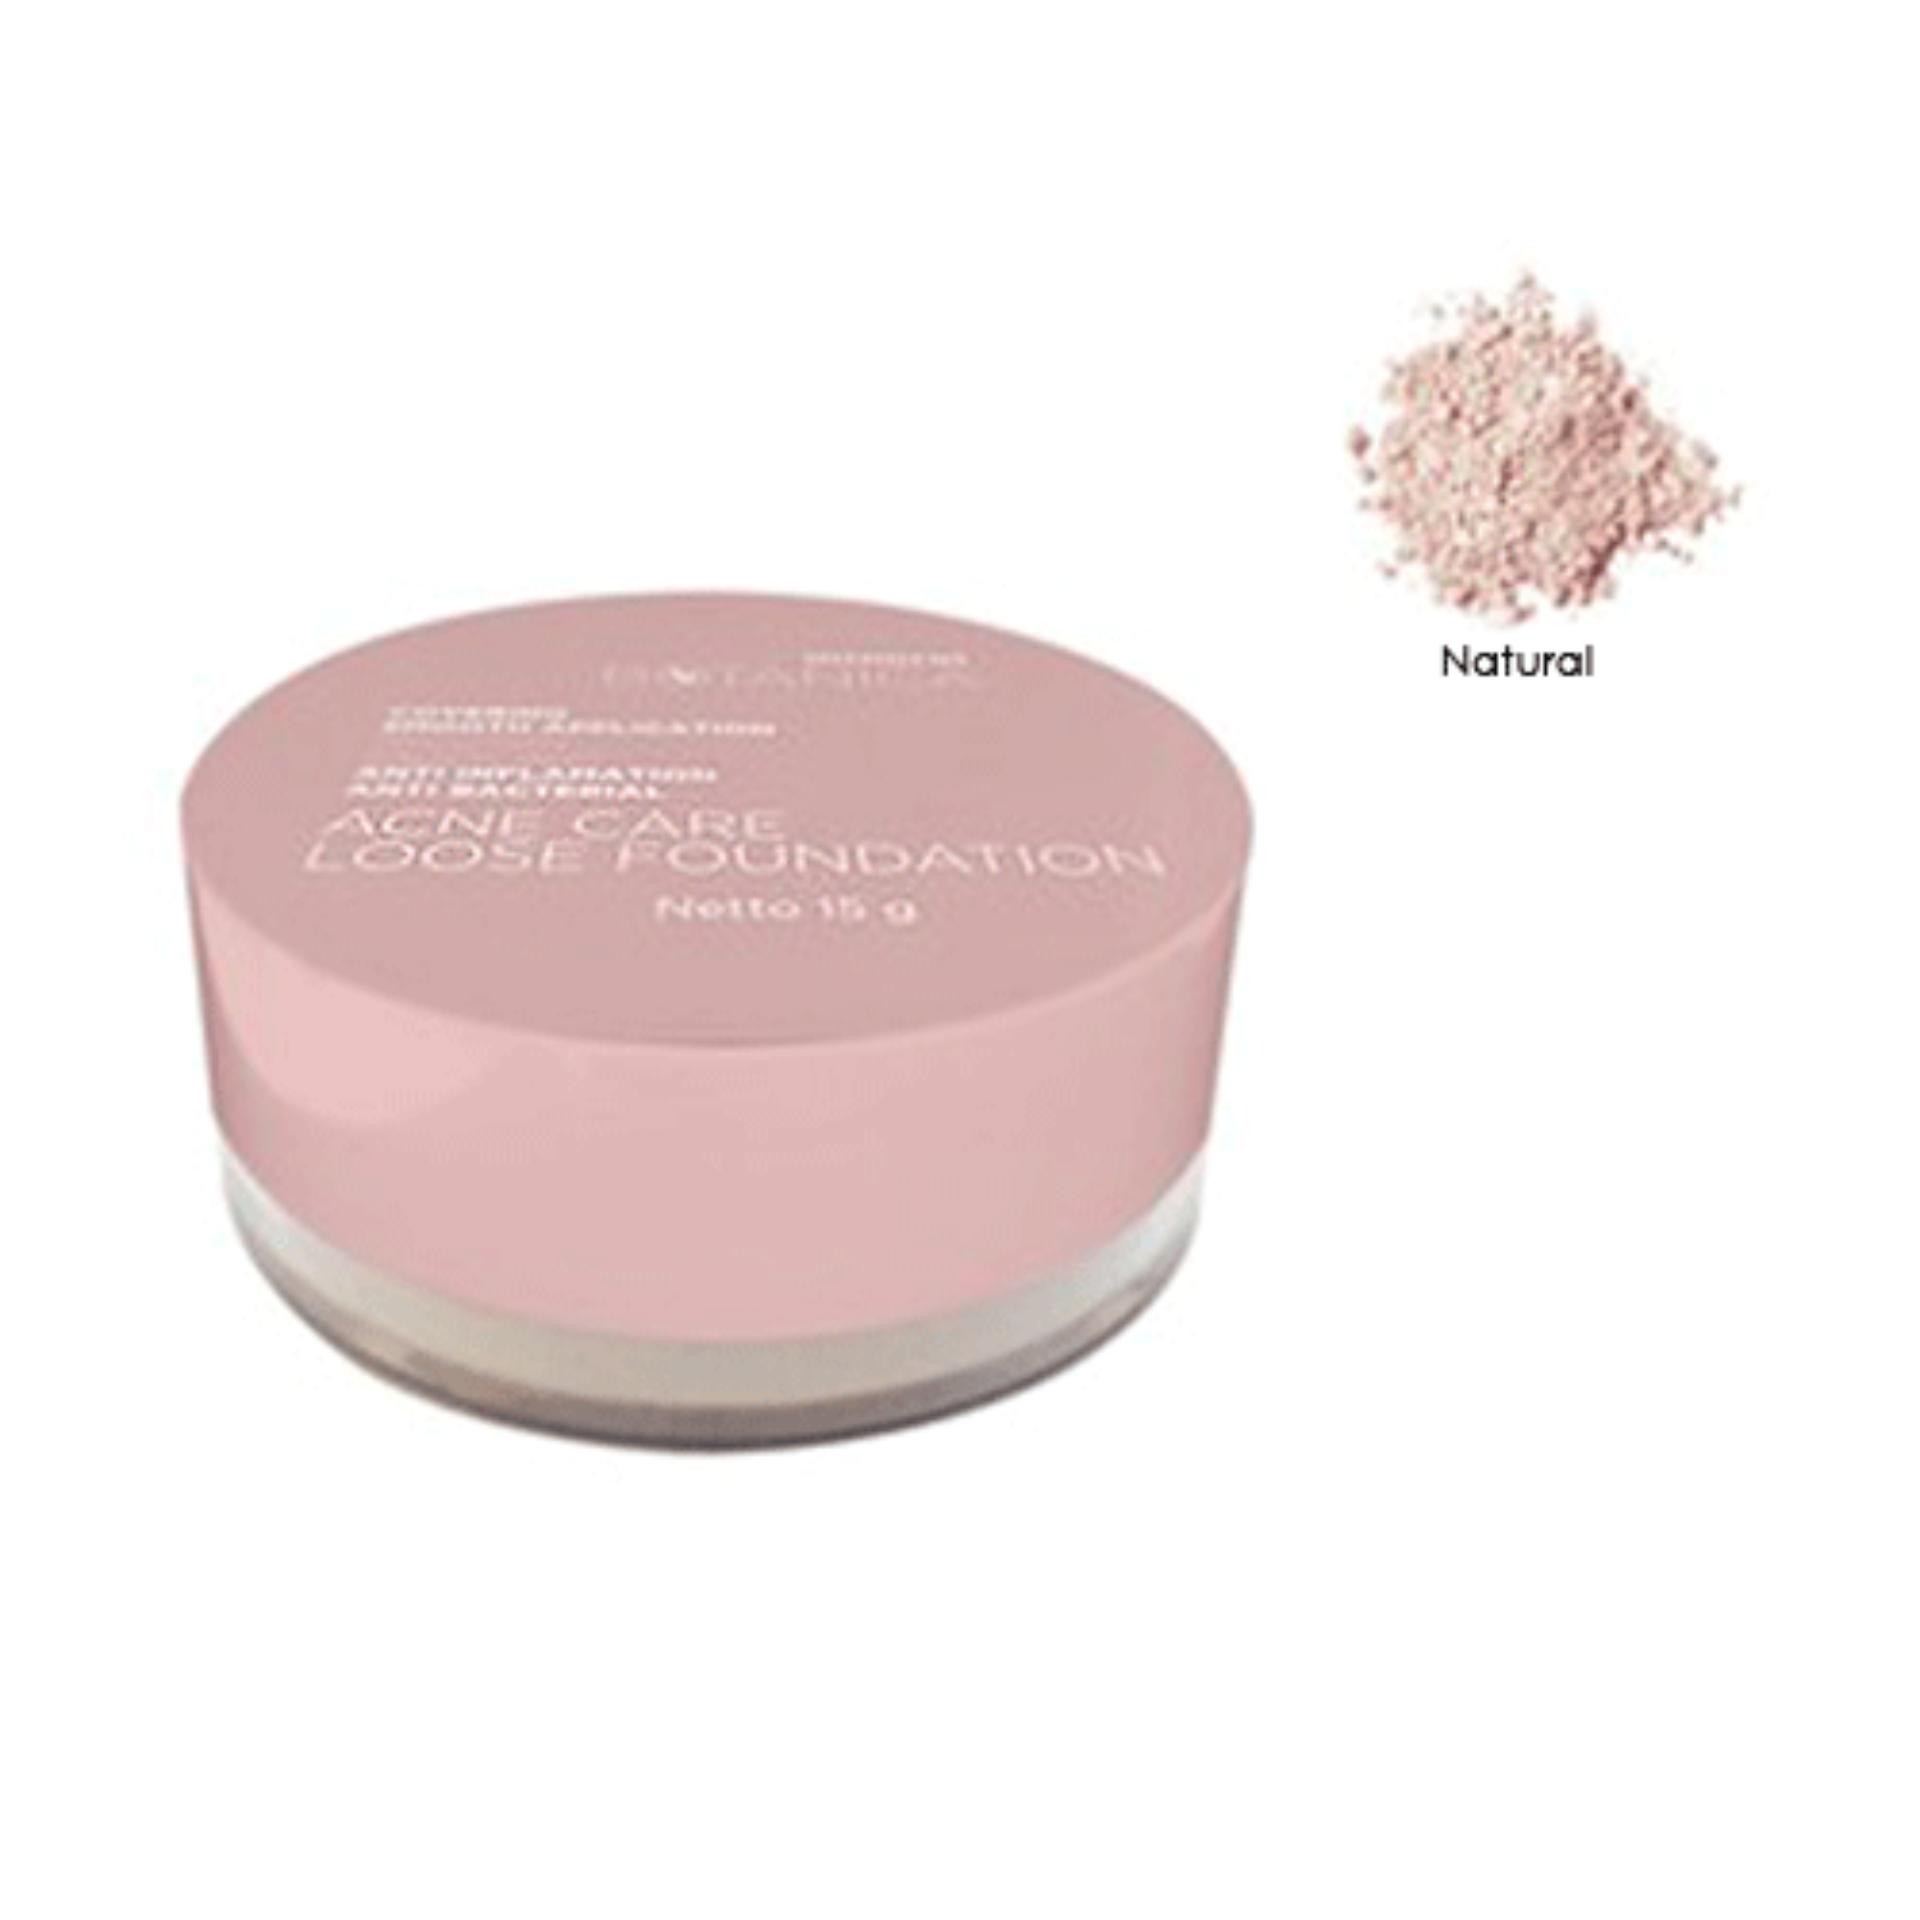 Fitur Mineral Botanica Original Loose Foundation Powder Emina Bare With Me Acne Care Natural